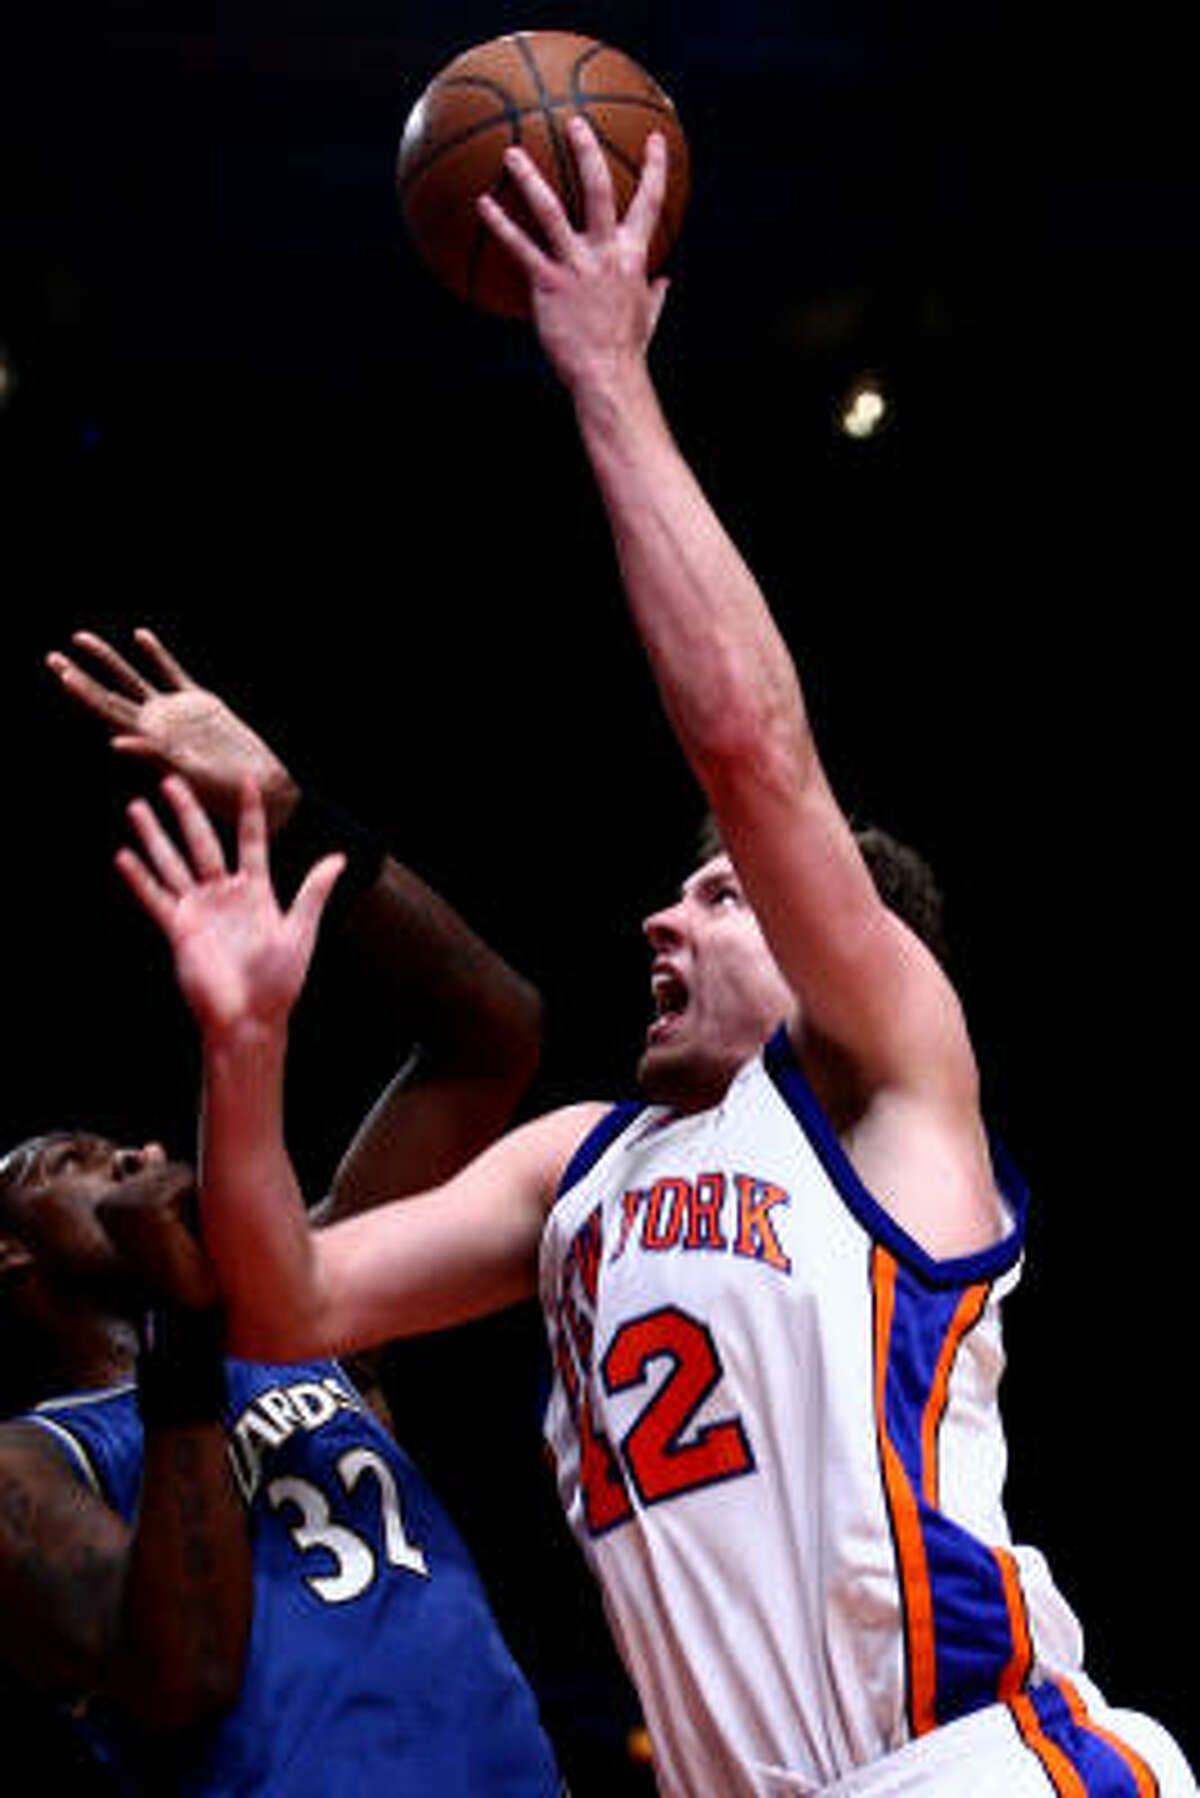 David Lee had 30 points and 10 rebounds, reserve Al Harrington scored 27 points, and the Knicks handed the Wizards their sixth straight loss with a 128-122 victory Wednesday night.